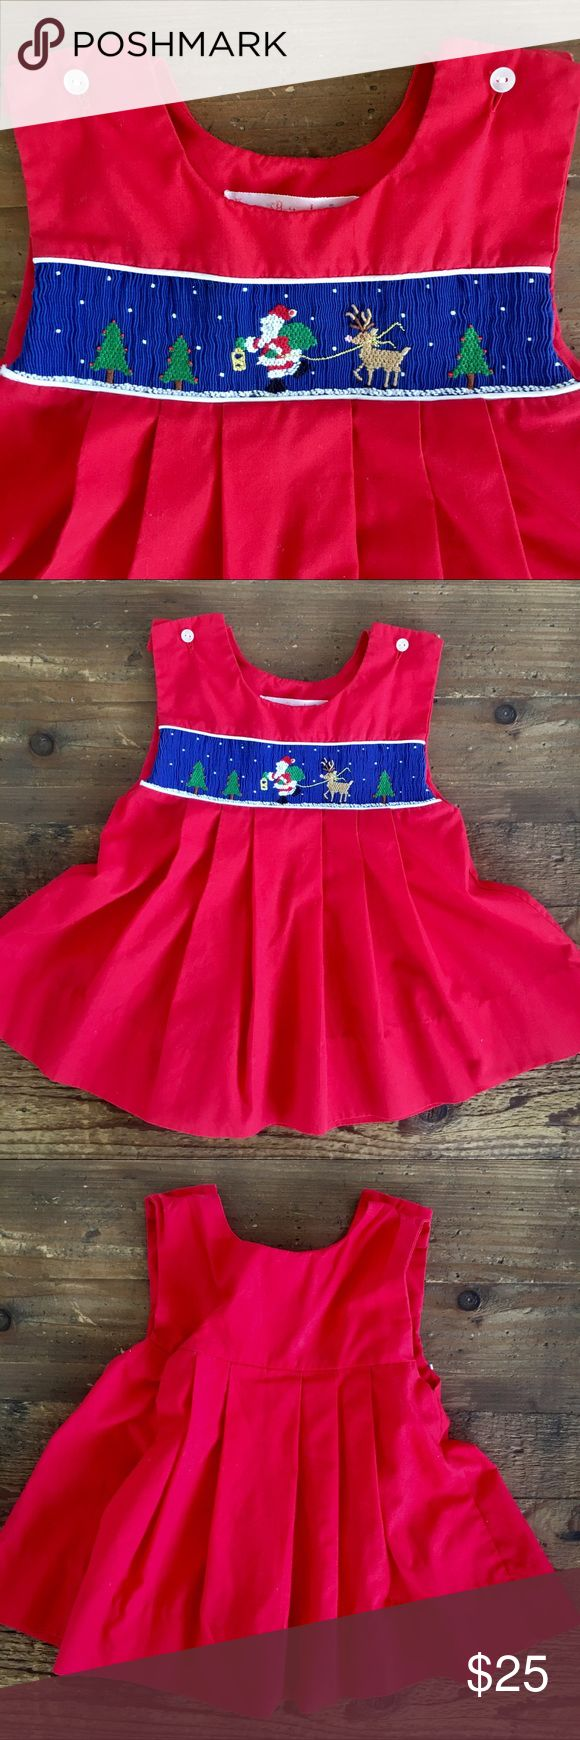 House of Hatten boutique smocked Santa dress House of Hatten intricately smocked and needle point dress in excellent condition! Solid Christmas red with an entire winter scene smocked across the chest. Soft pleated front. A most unique and special dress when only the best will do for your little one! Formal or causal dress. Size tag reads 18 months. However, listing as 12-18 as it runs a bit on the small side in my opinion House of Hatten Dresses Formal